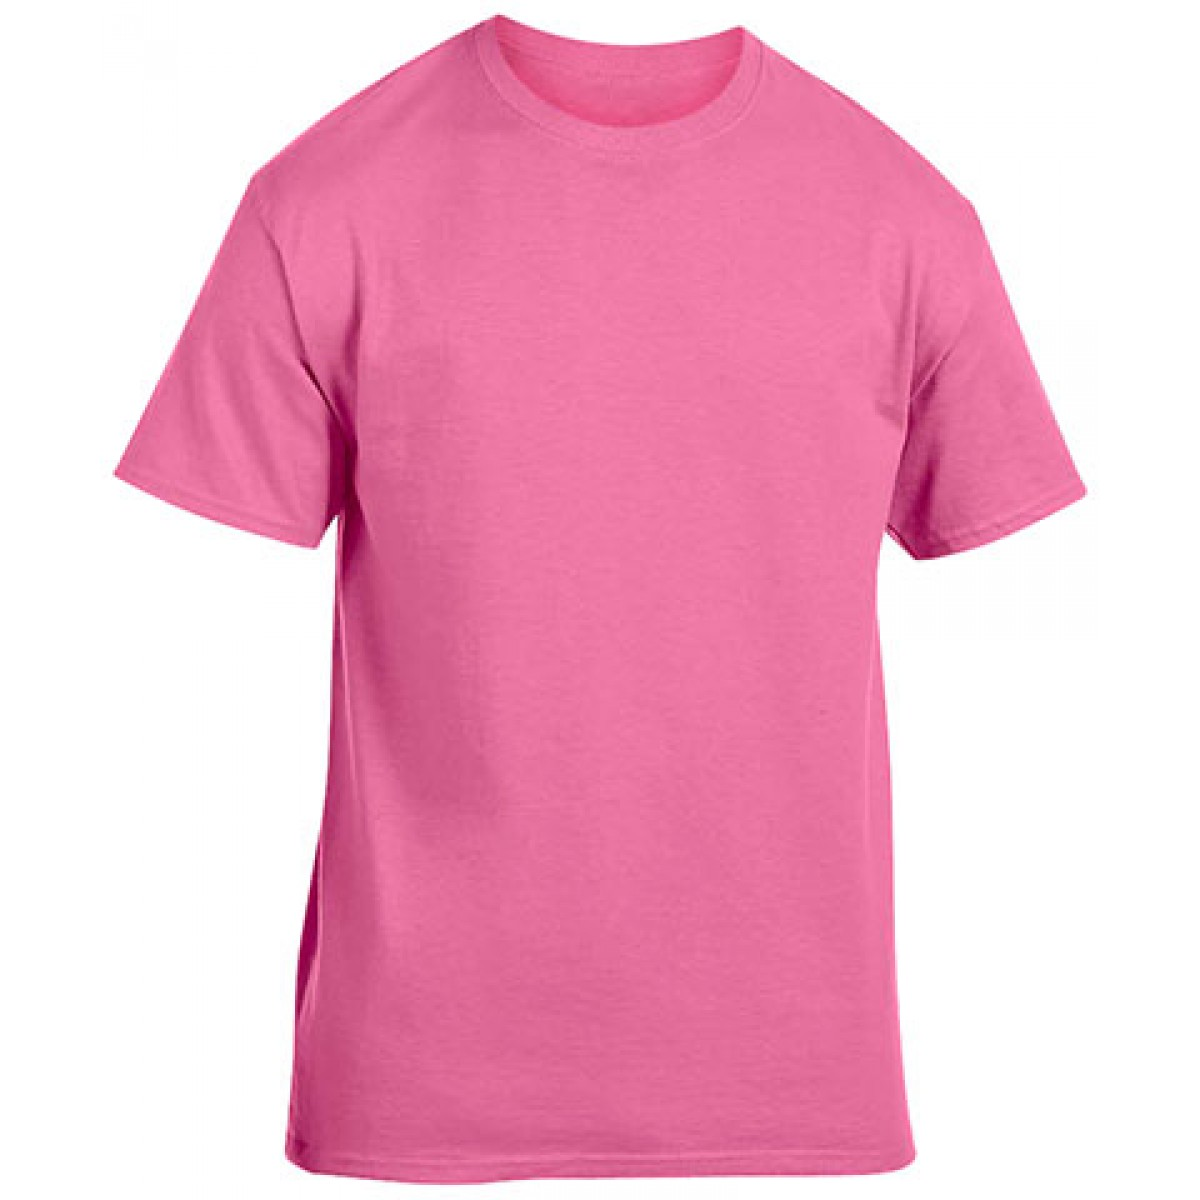 Cotton Short Sleeve T-Shirt-Safety Pink-M